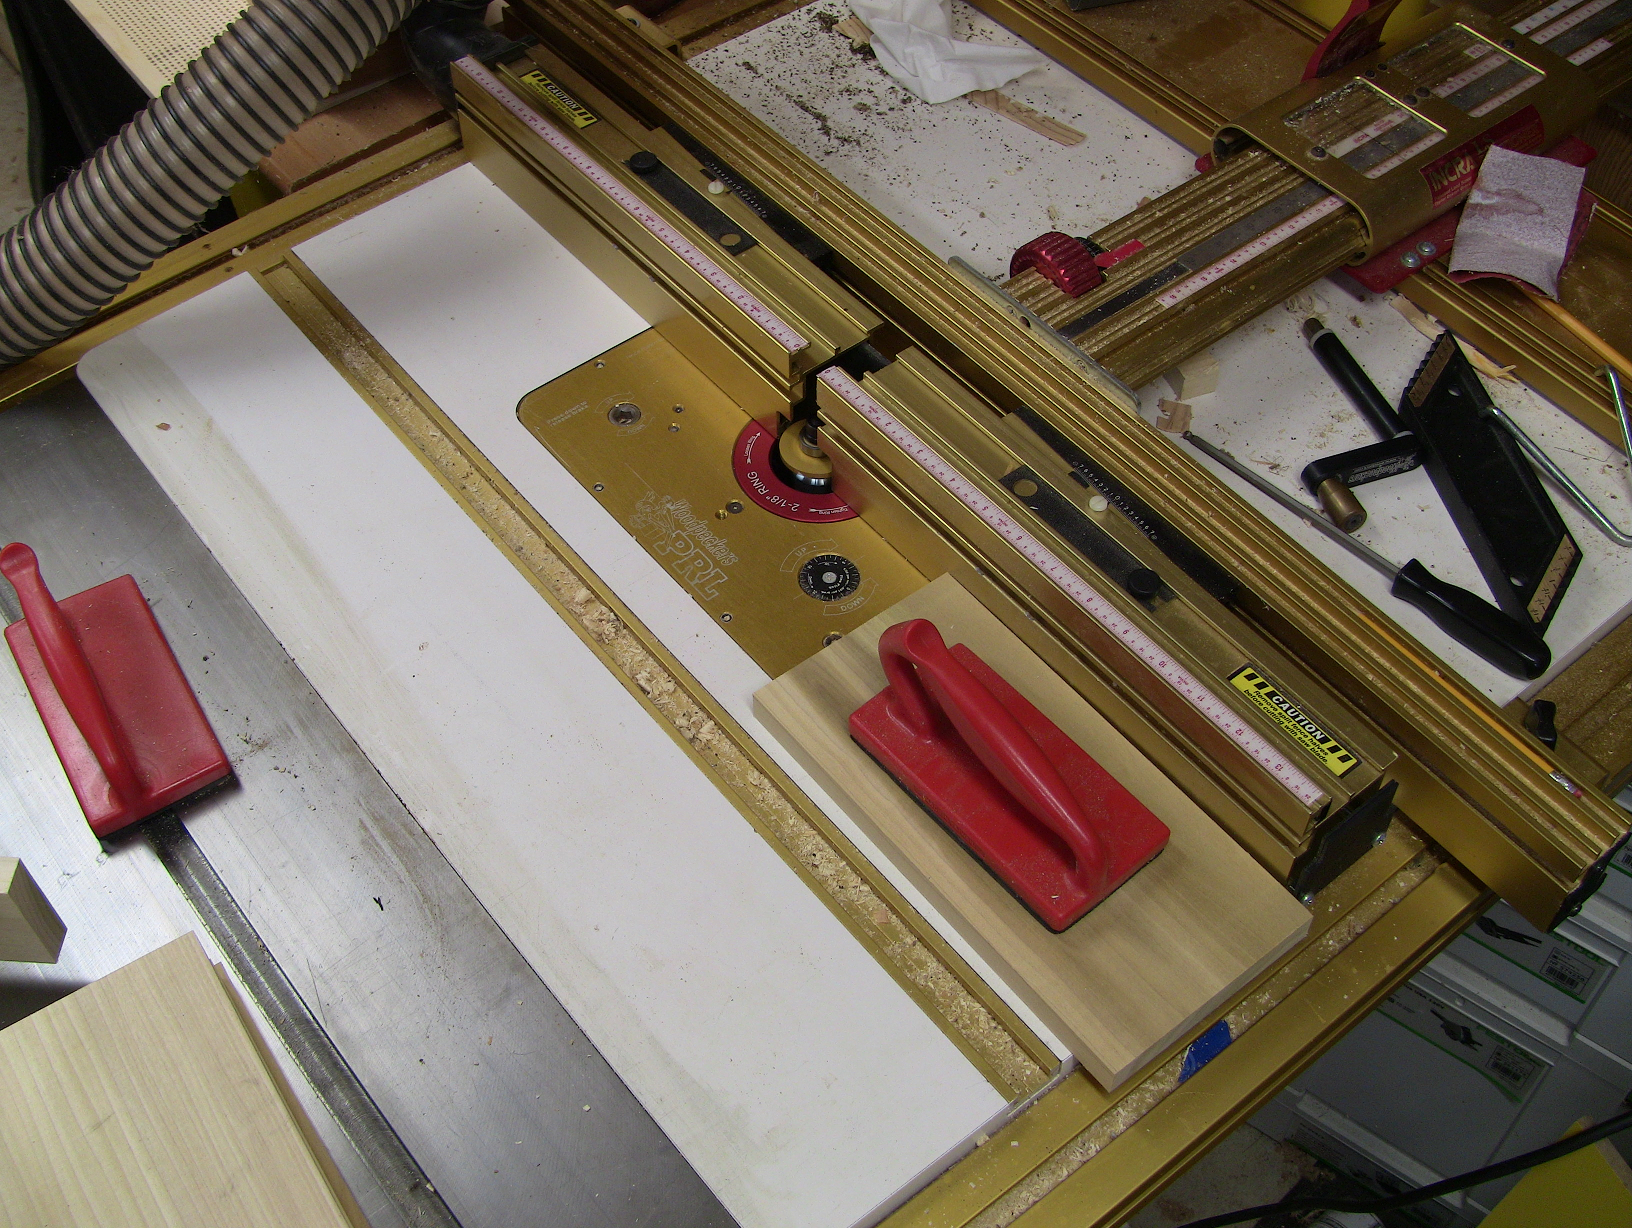 Troubleshooting Warped Cabinet Doors - Woodworking Information at